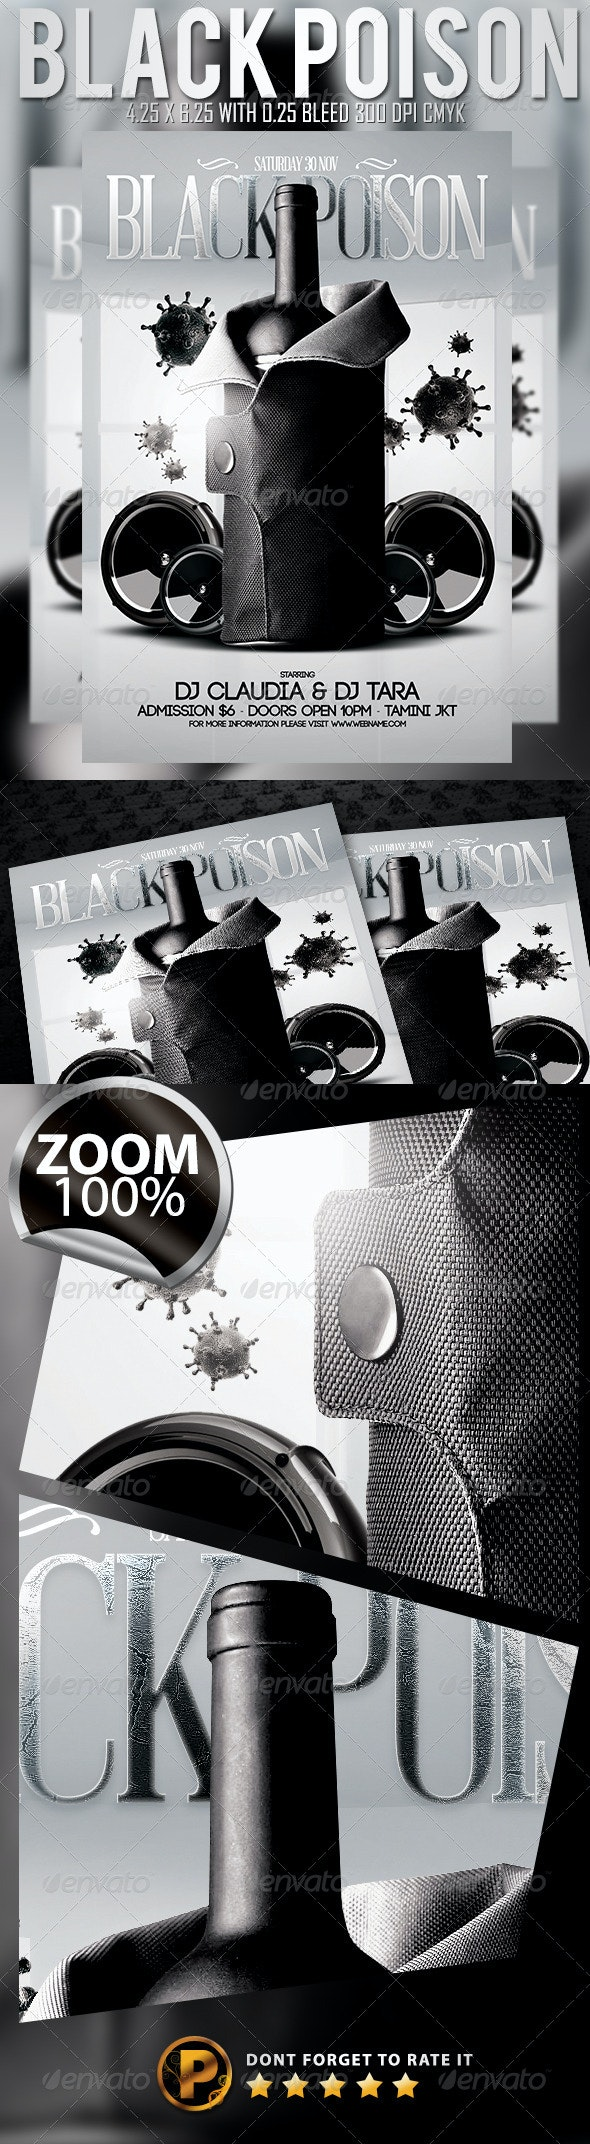 Black Poison Flyer Template - Clubs & Parties Events